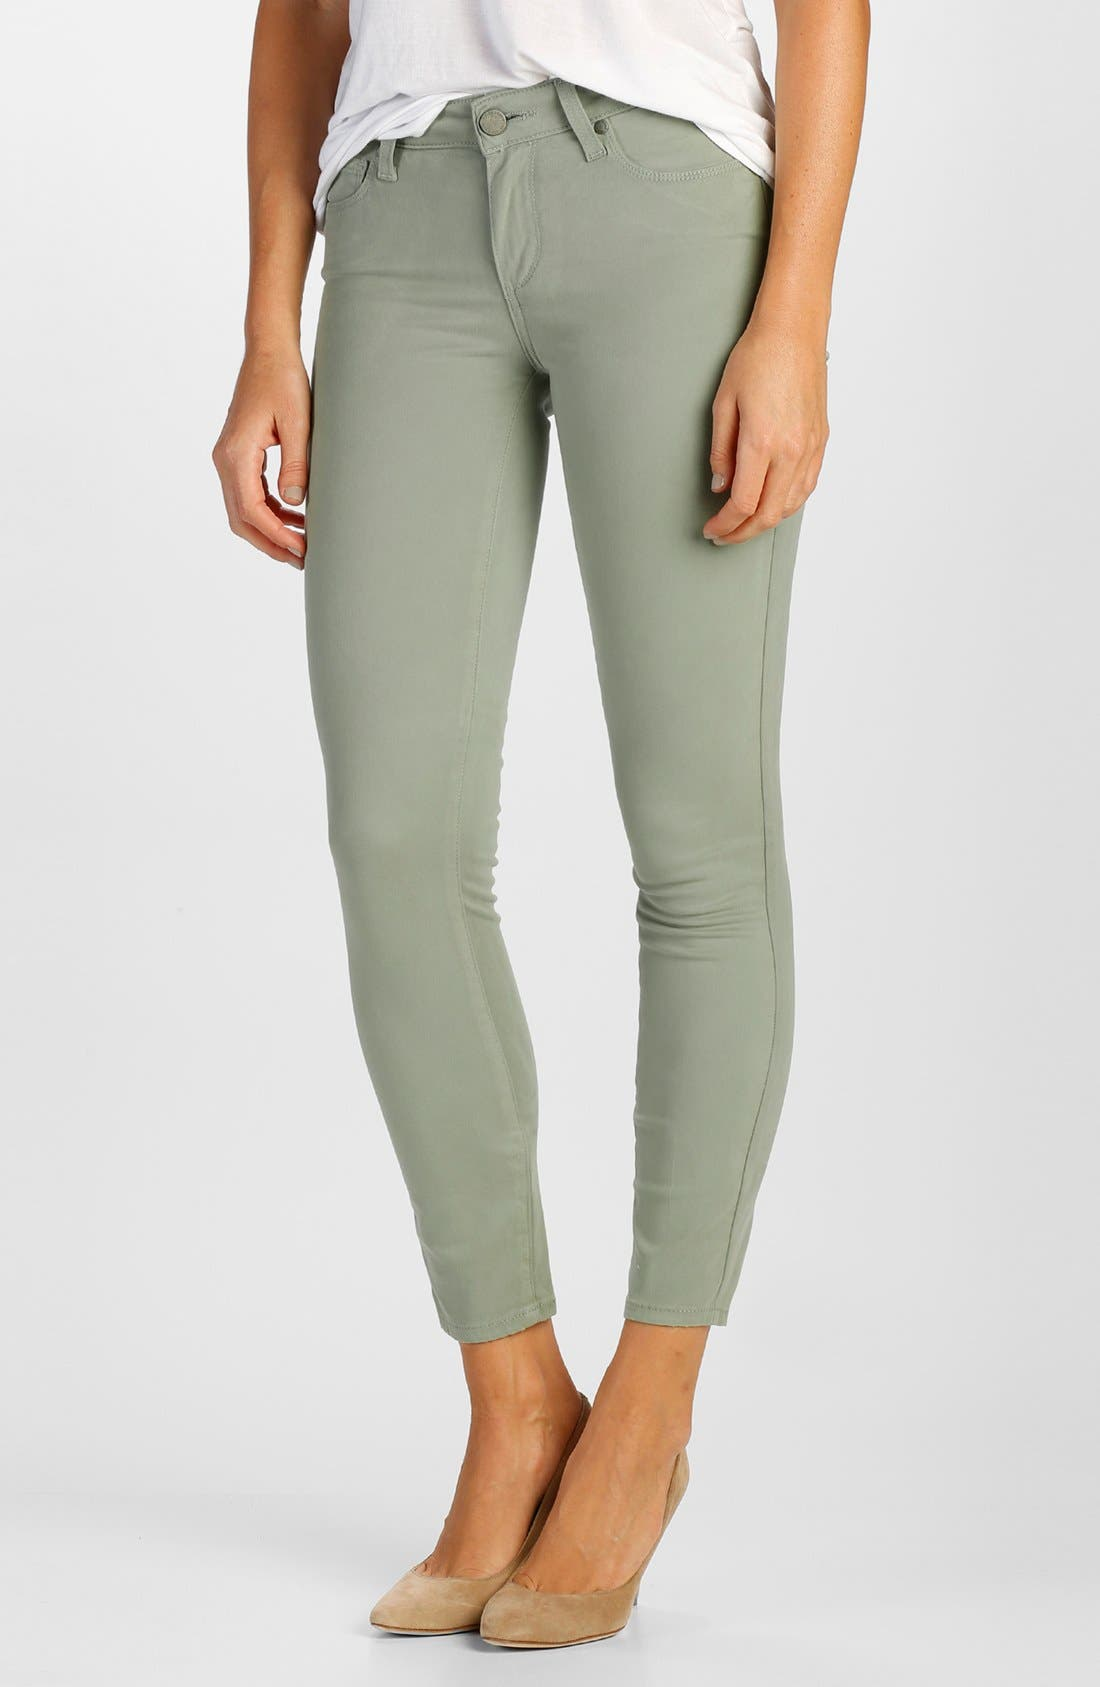 Main Image - Paige Denim 'Verdugo' Ankle Skinny Jeans